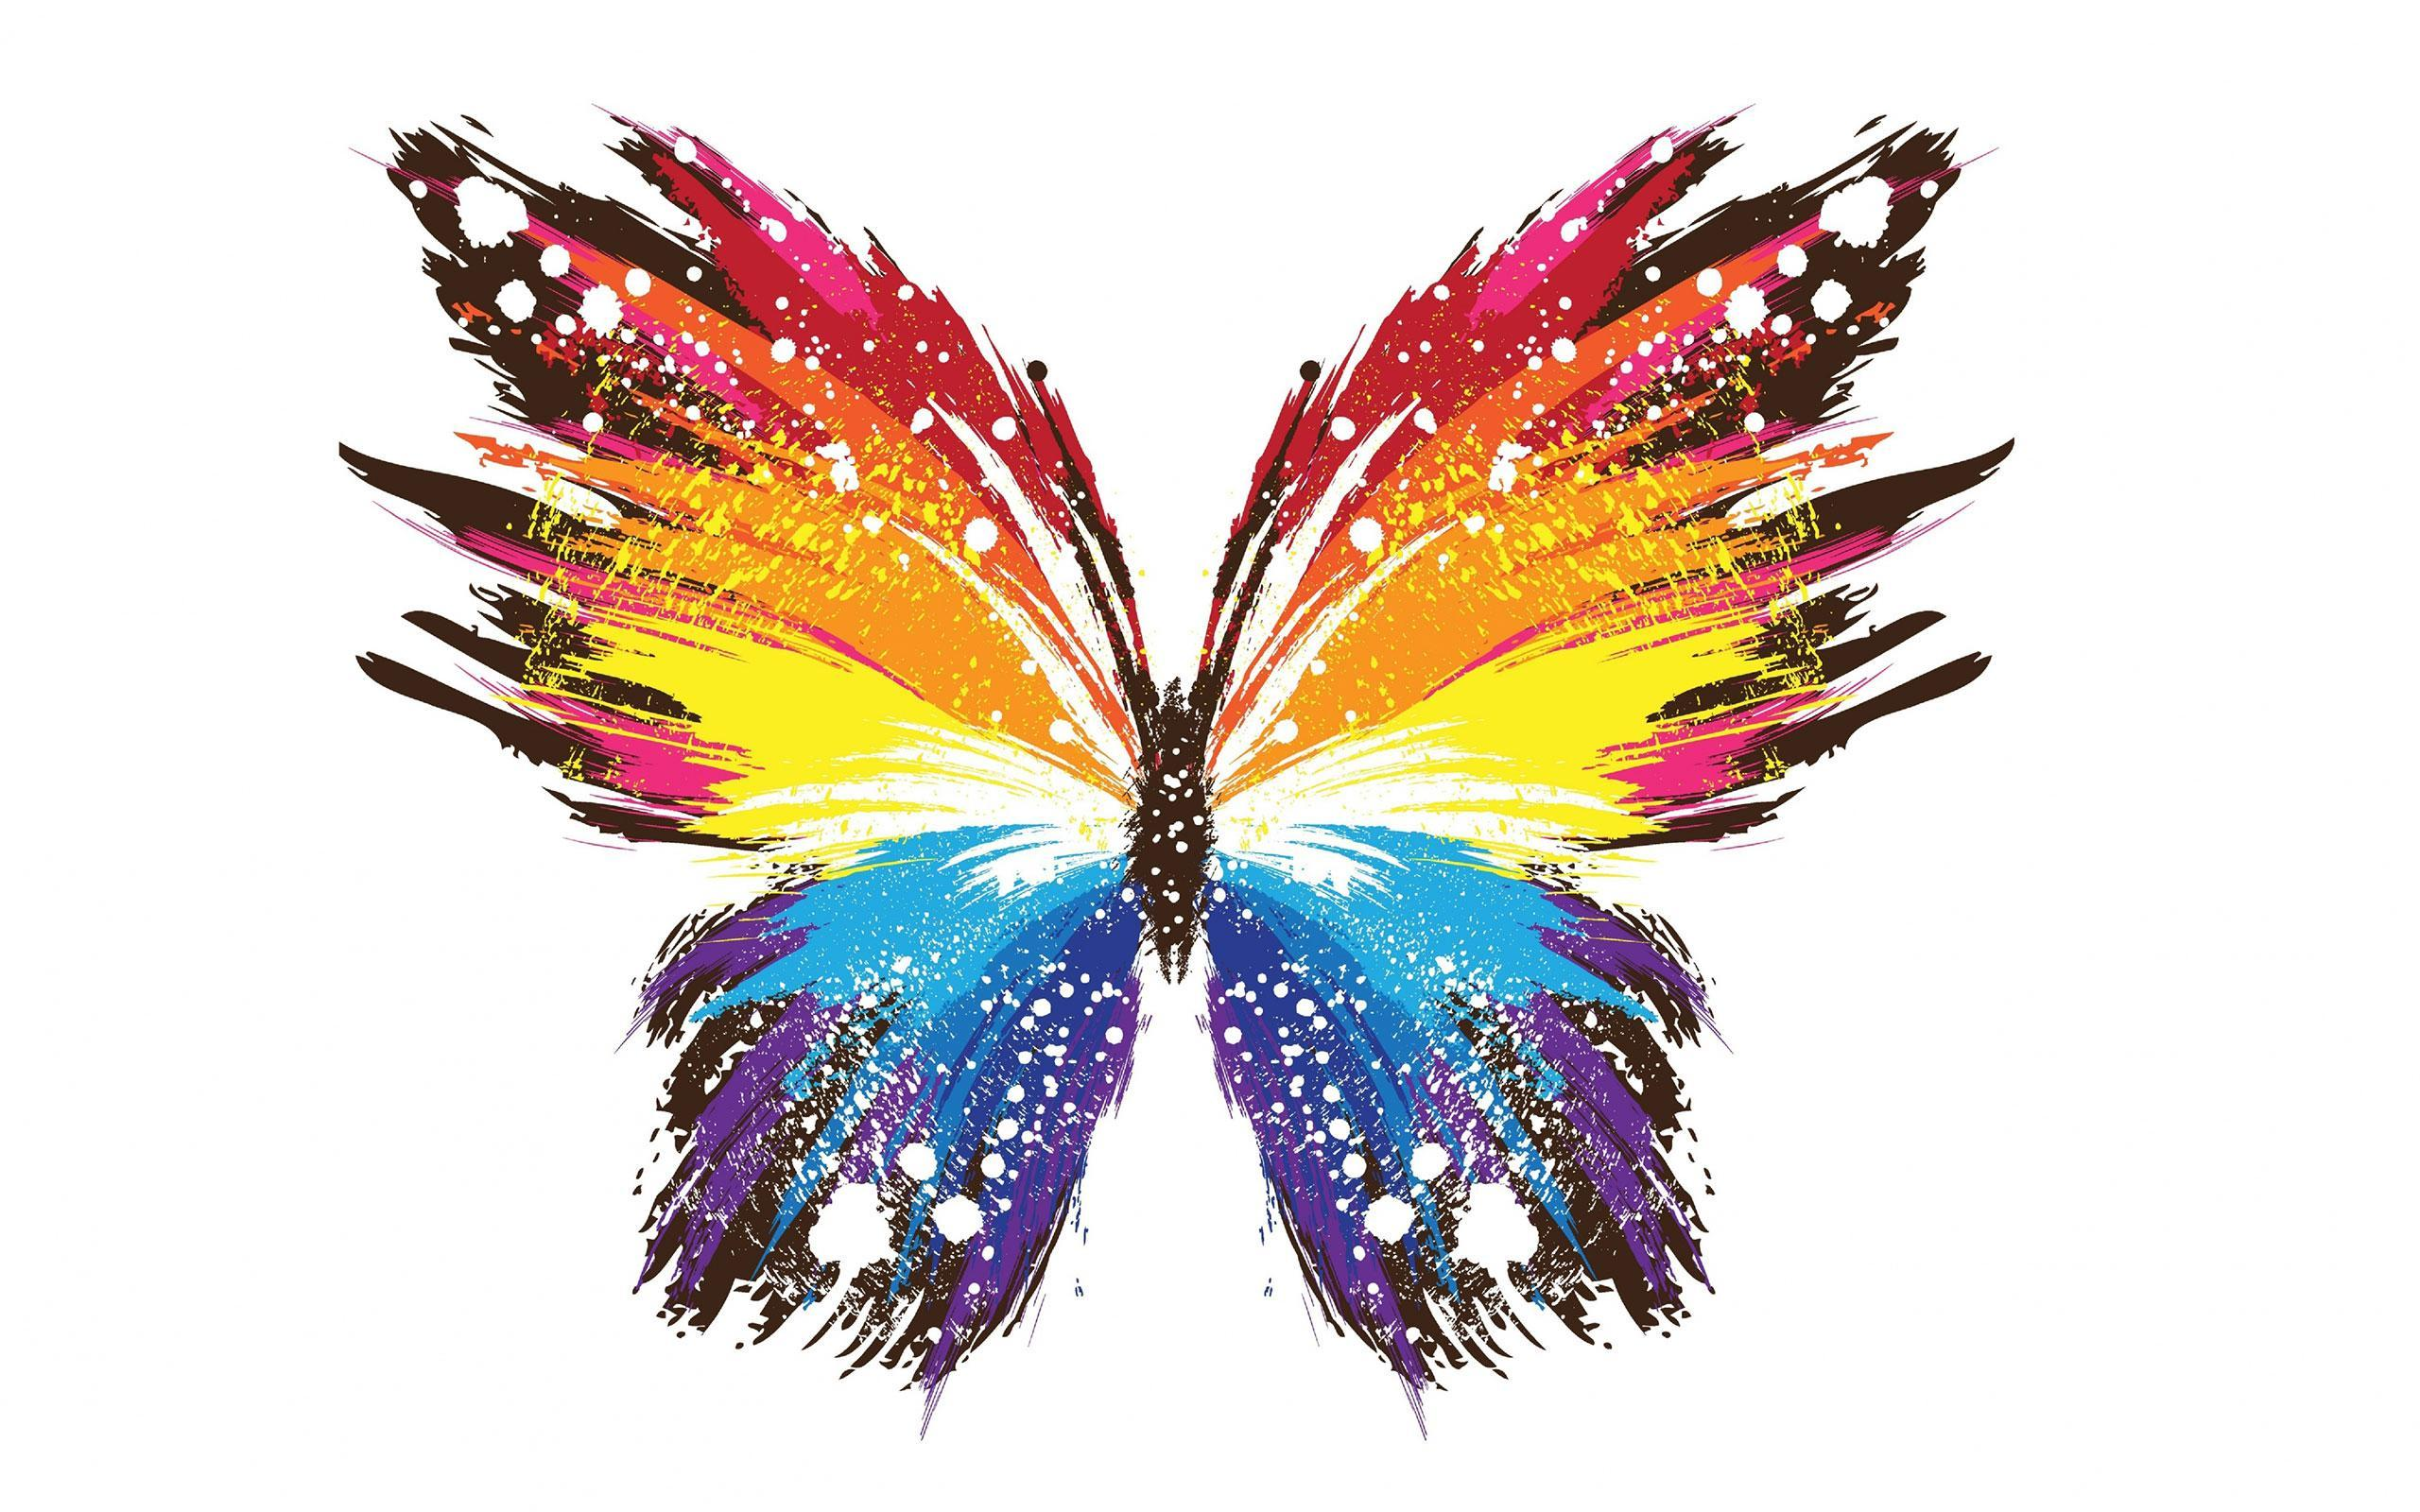 Butterfly Live Wallpaper For Android APK Download